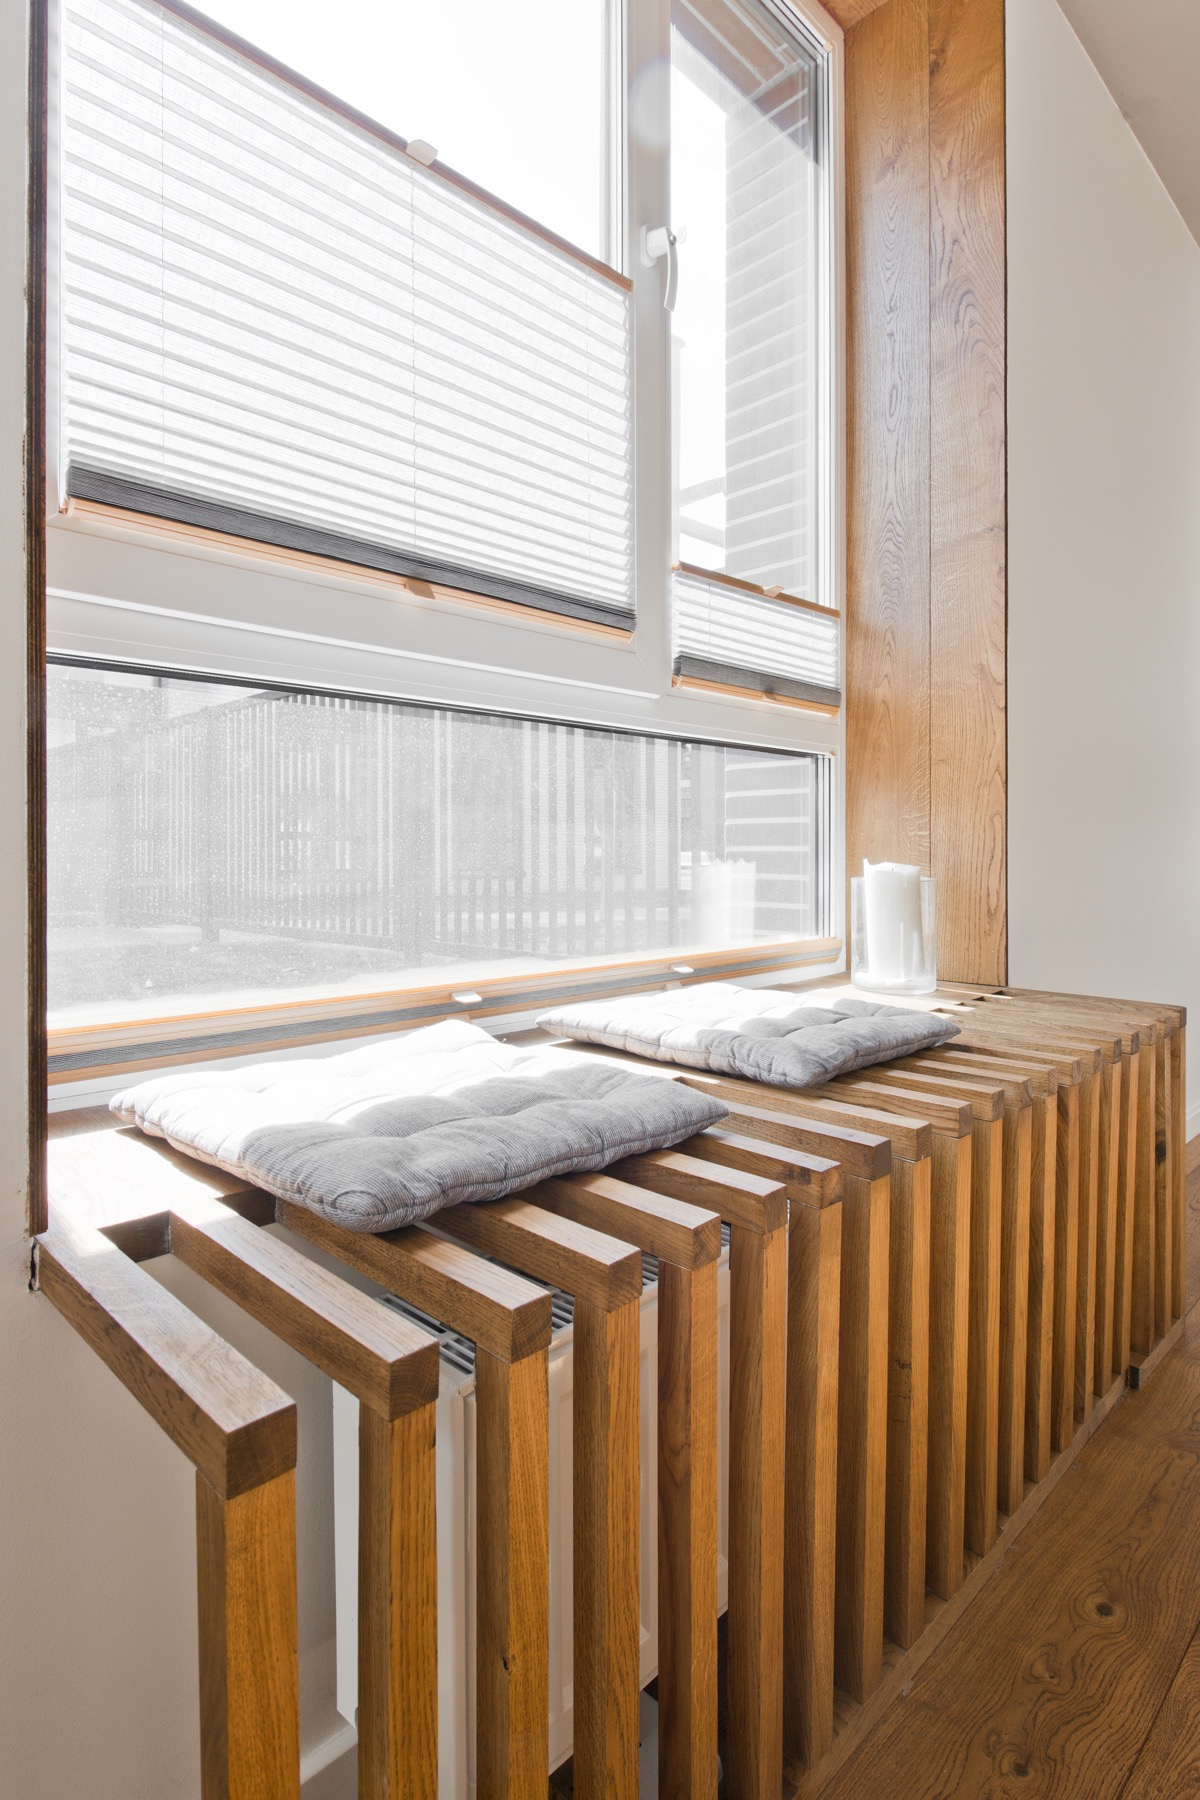 Radiator Design - Chic scandinavian loft interior